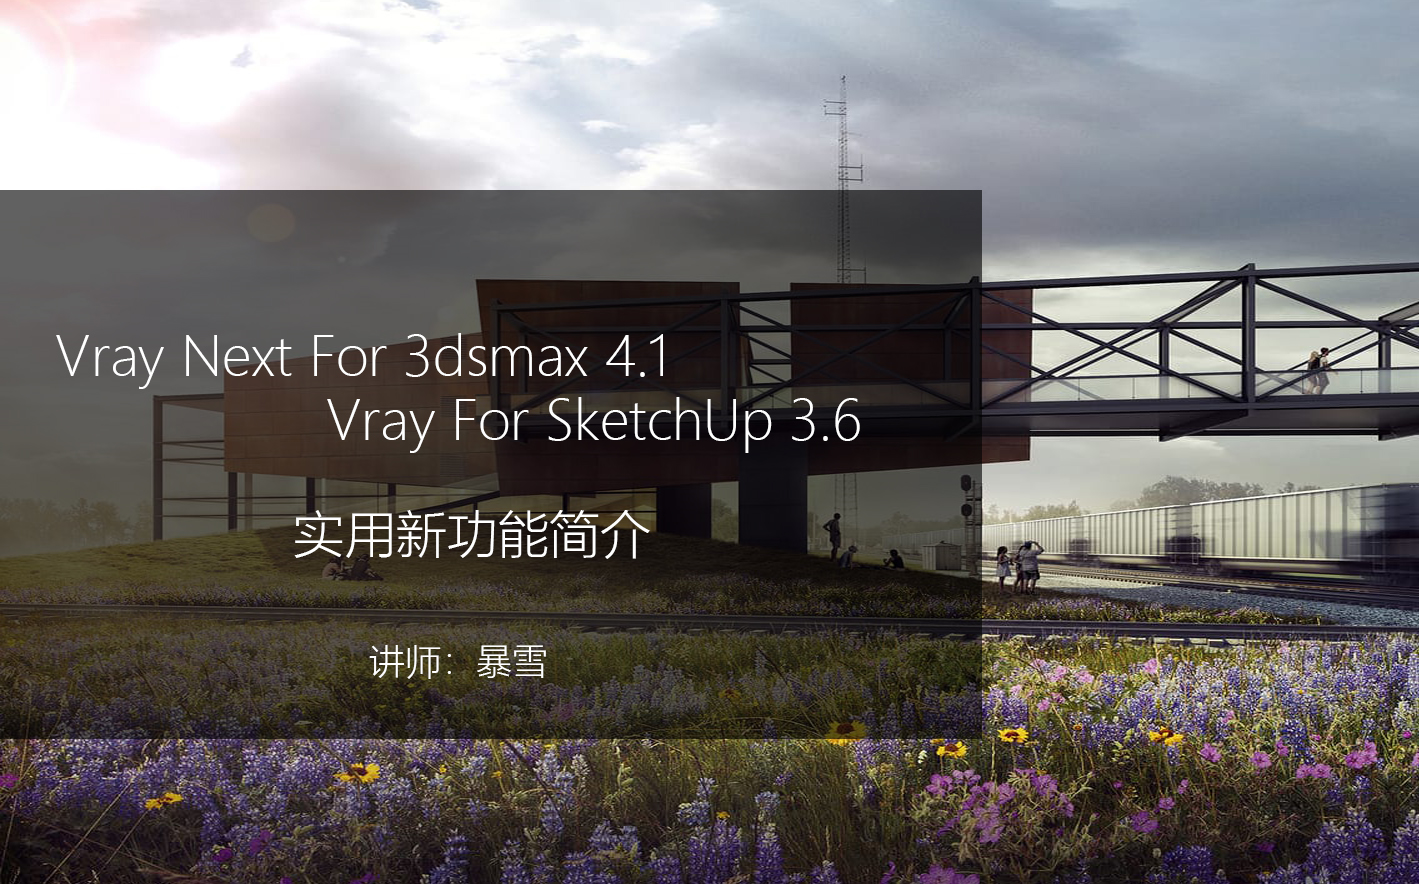 Vray Next 4 1 For 3dsmax Vray 3 6 For SketchUp 新功能解析_哔